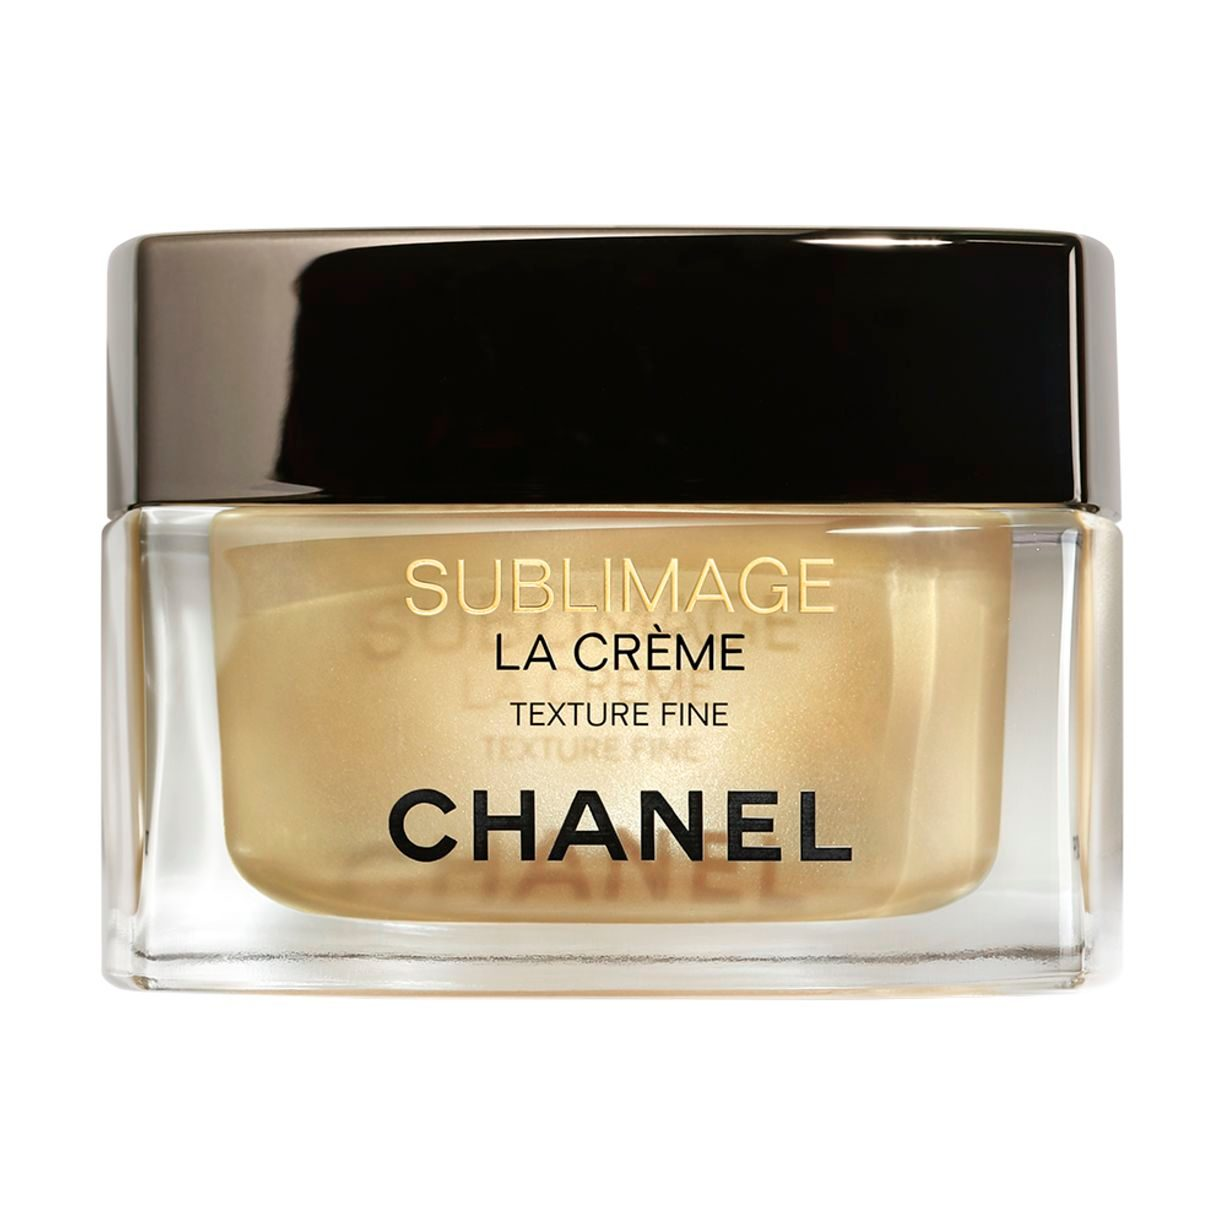 SUBLIMAGE LA CRÈME ULTIMATE SKIN REVITALIZATION - TEXTURE FINE